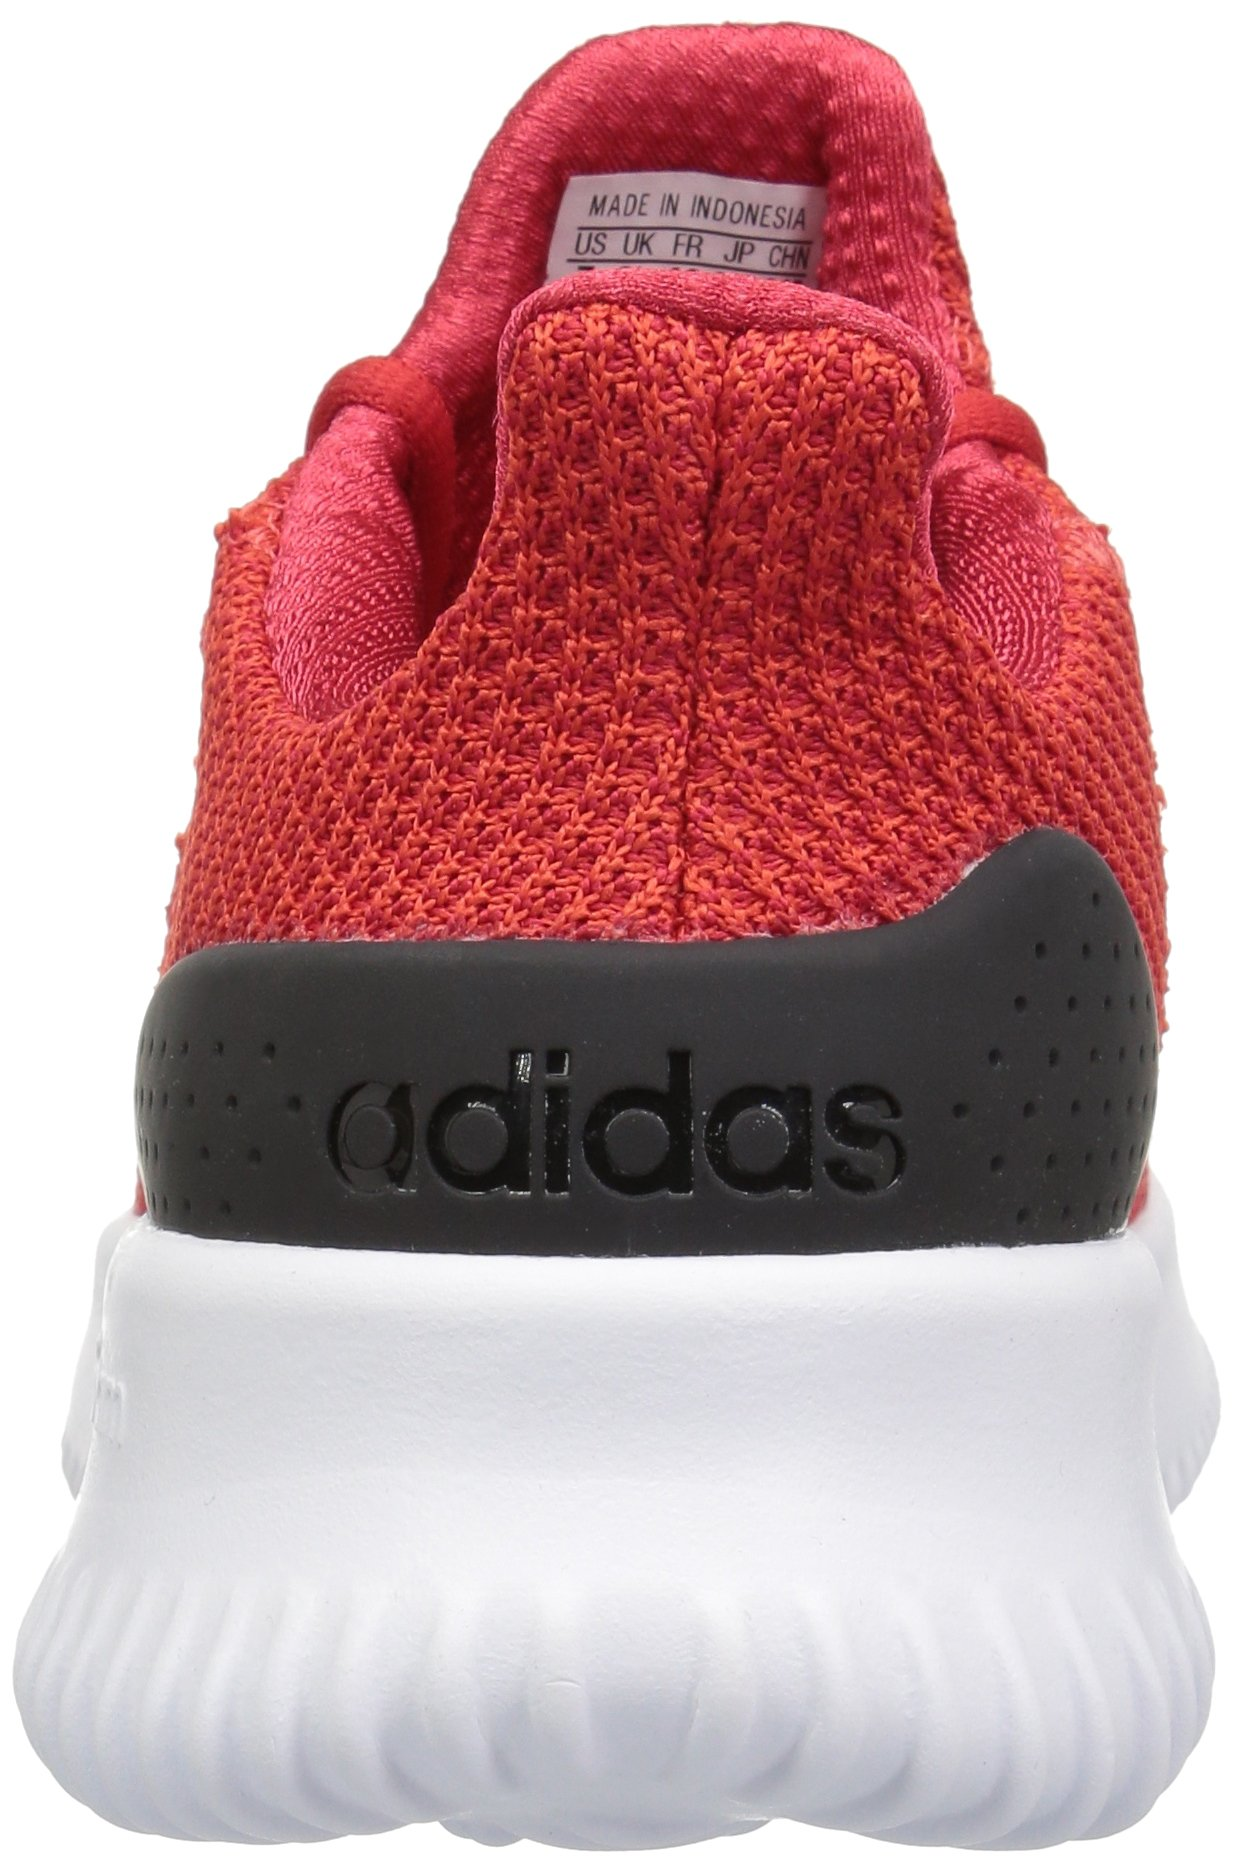 adidas Kids' Cloudfoam Ultimate Running Shoe, Red/Scarlet/Black, 1 M US Little Kid by adidas (Image #2)